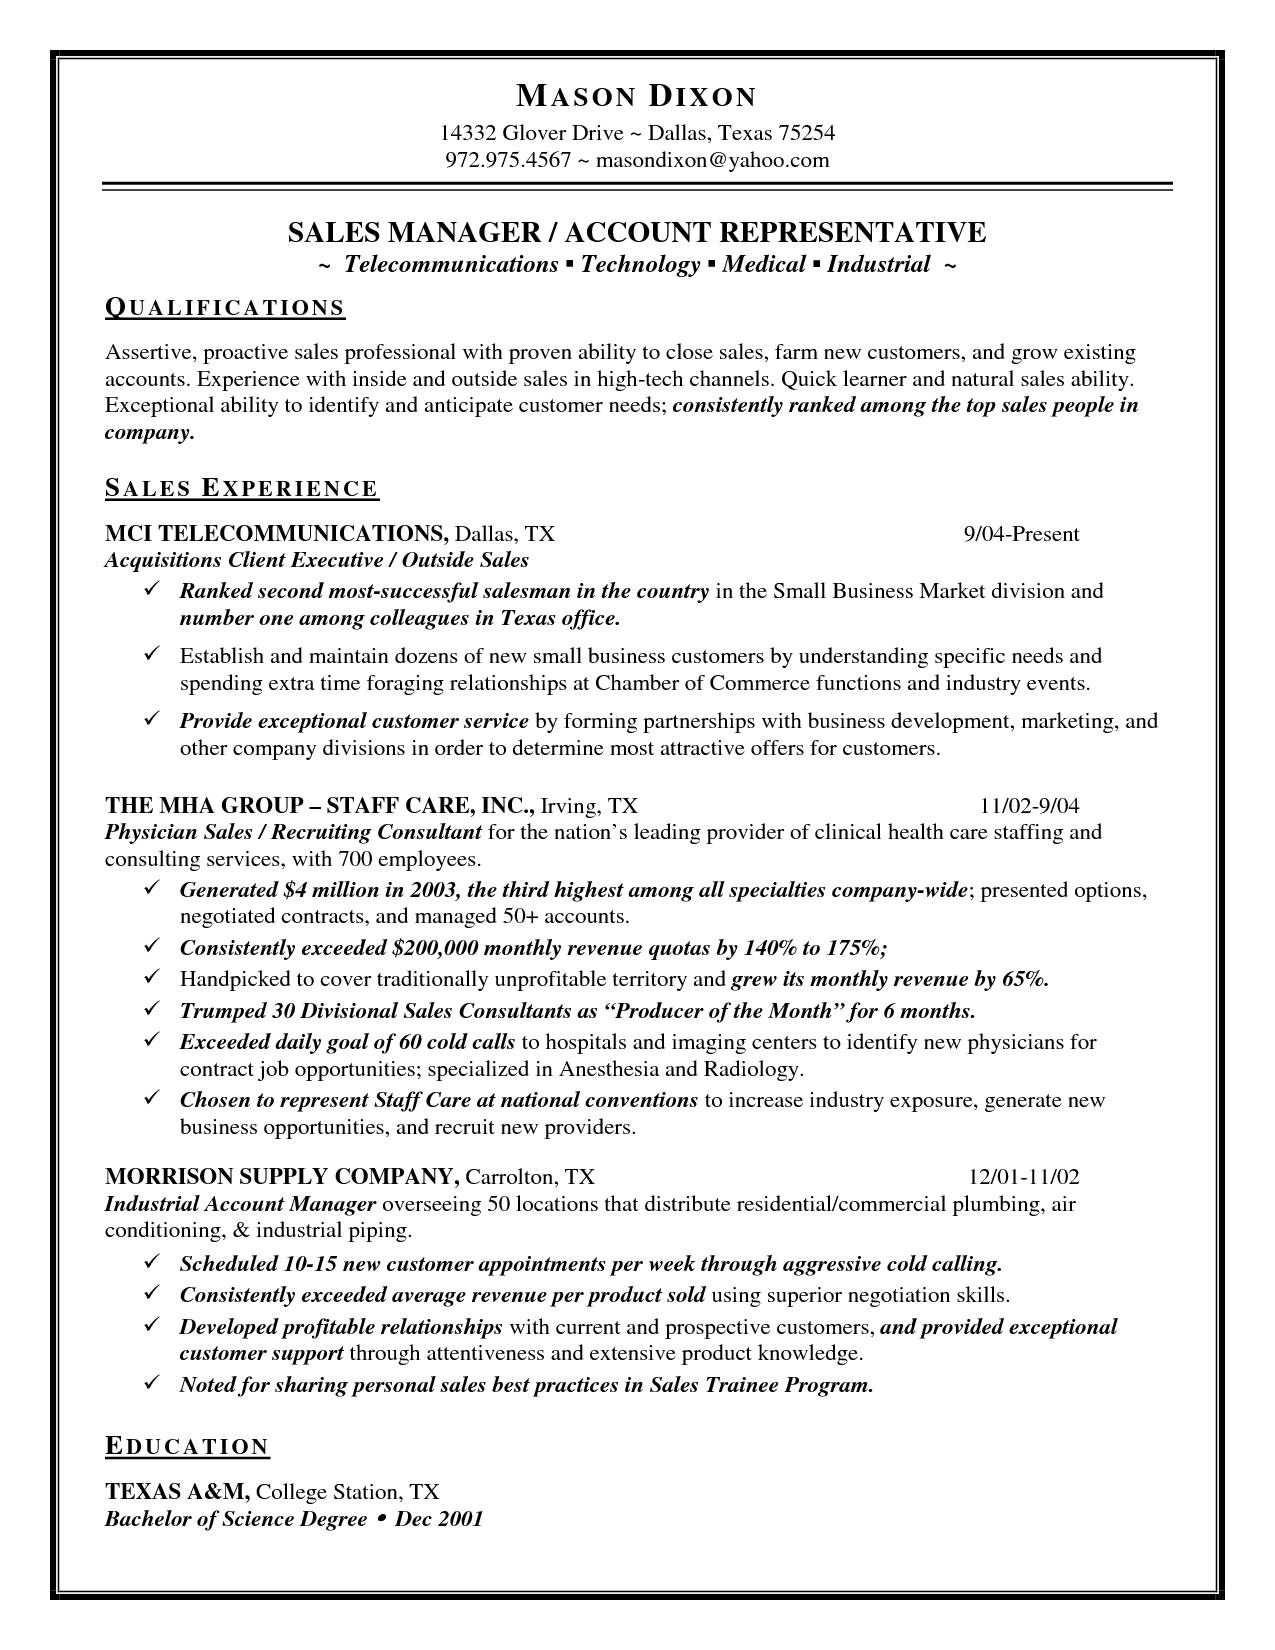 quick learner resume inside sales resume sample mason dixon 14332 glover drive dallas - Inside Sales Resume